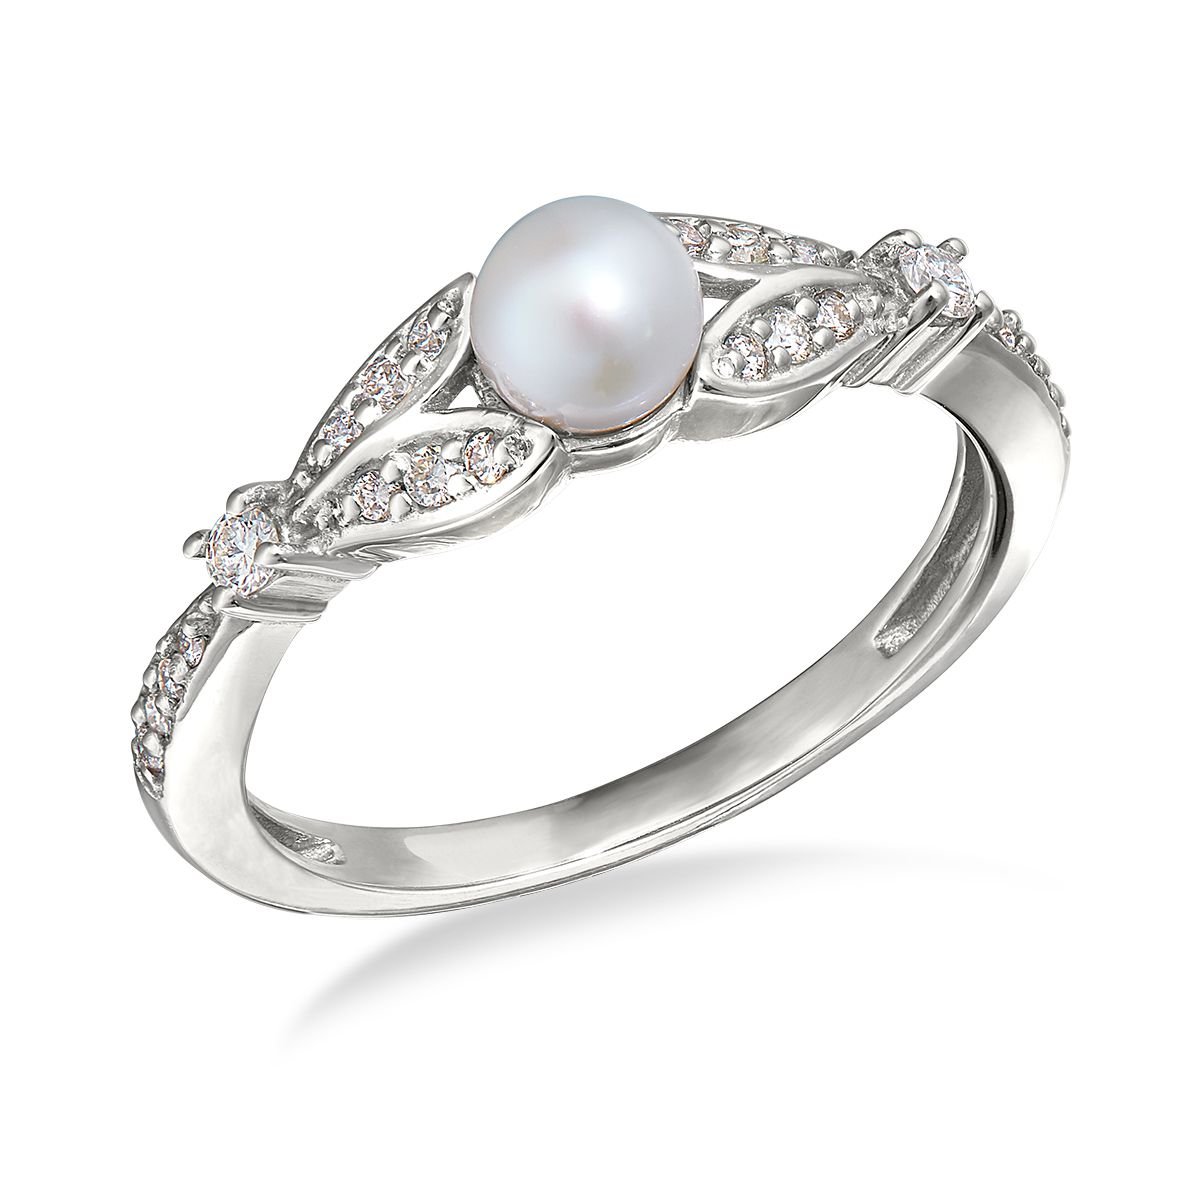 Heirloom elegance 14kt white gold pearl and diamond